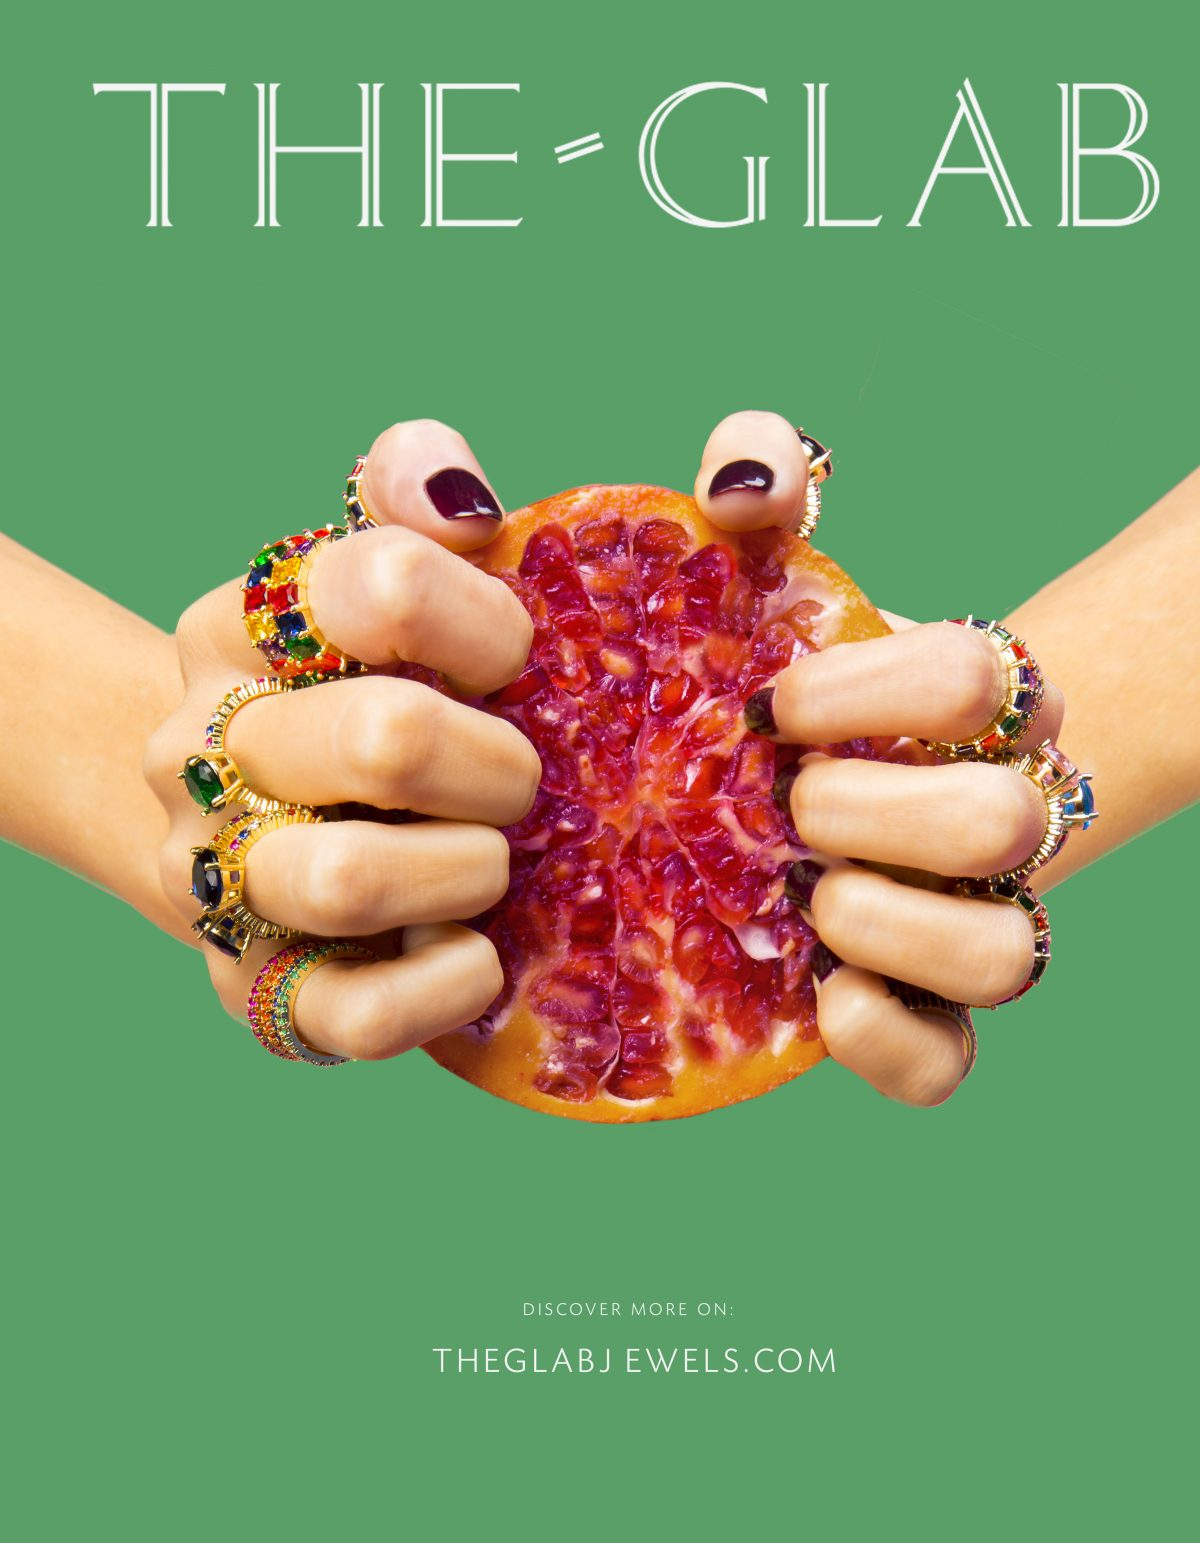 The-Glab